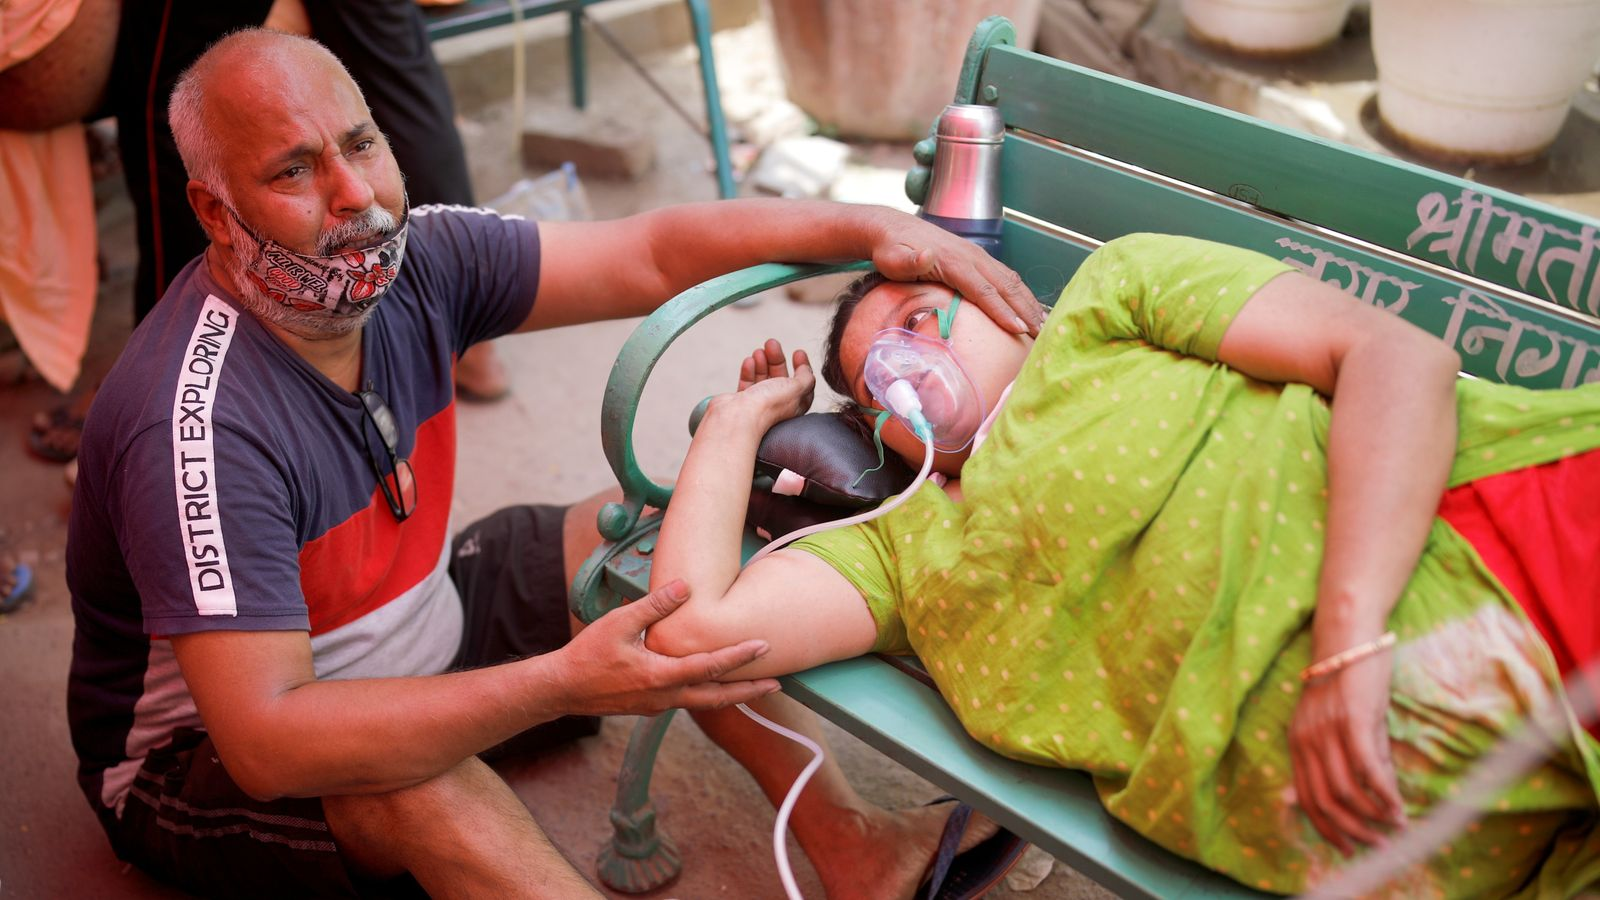 COVID-19: India coronavirus cases soar past 20 million with health system on brink of collapse